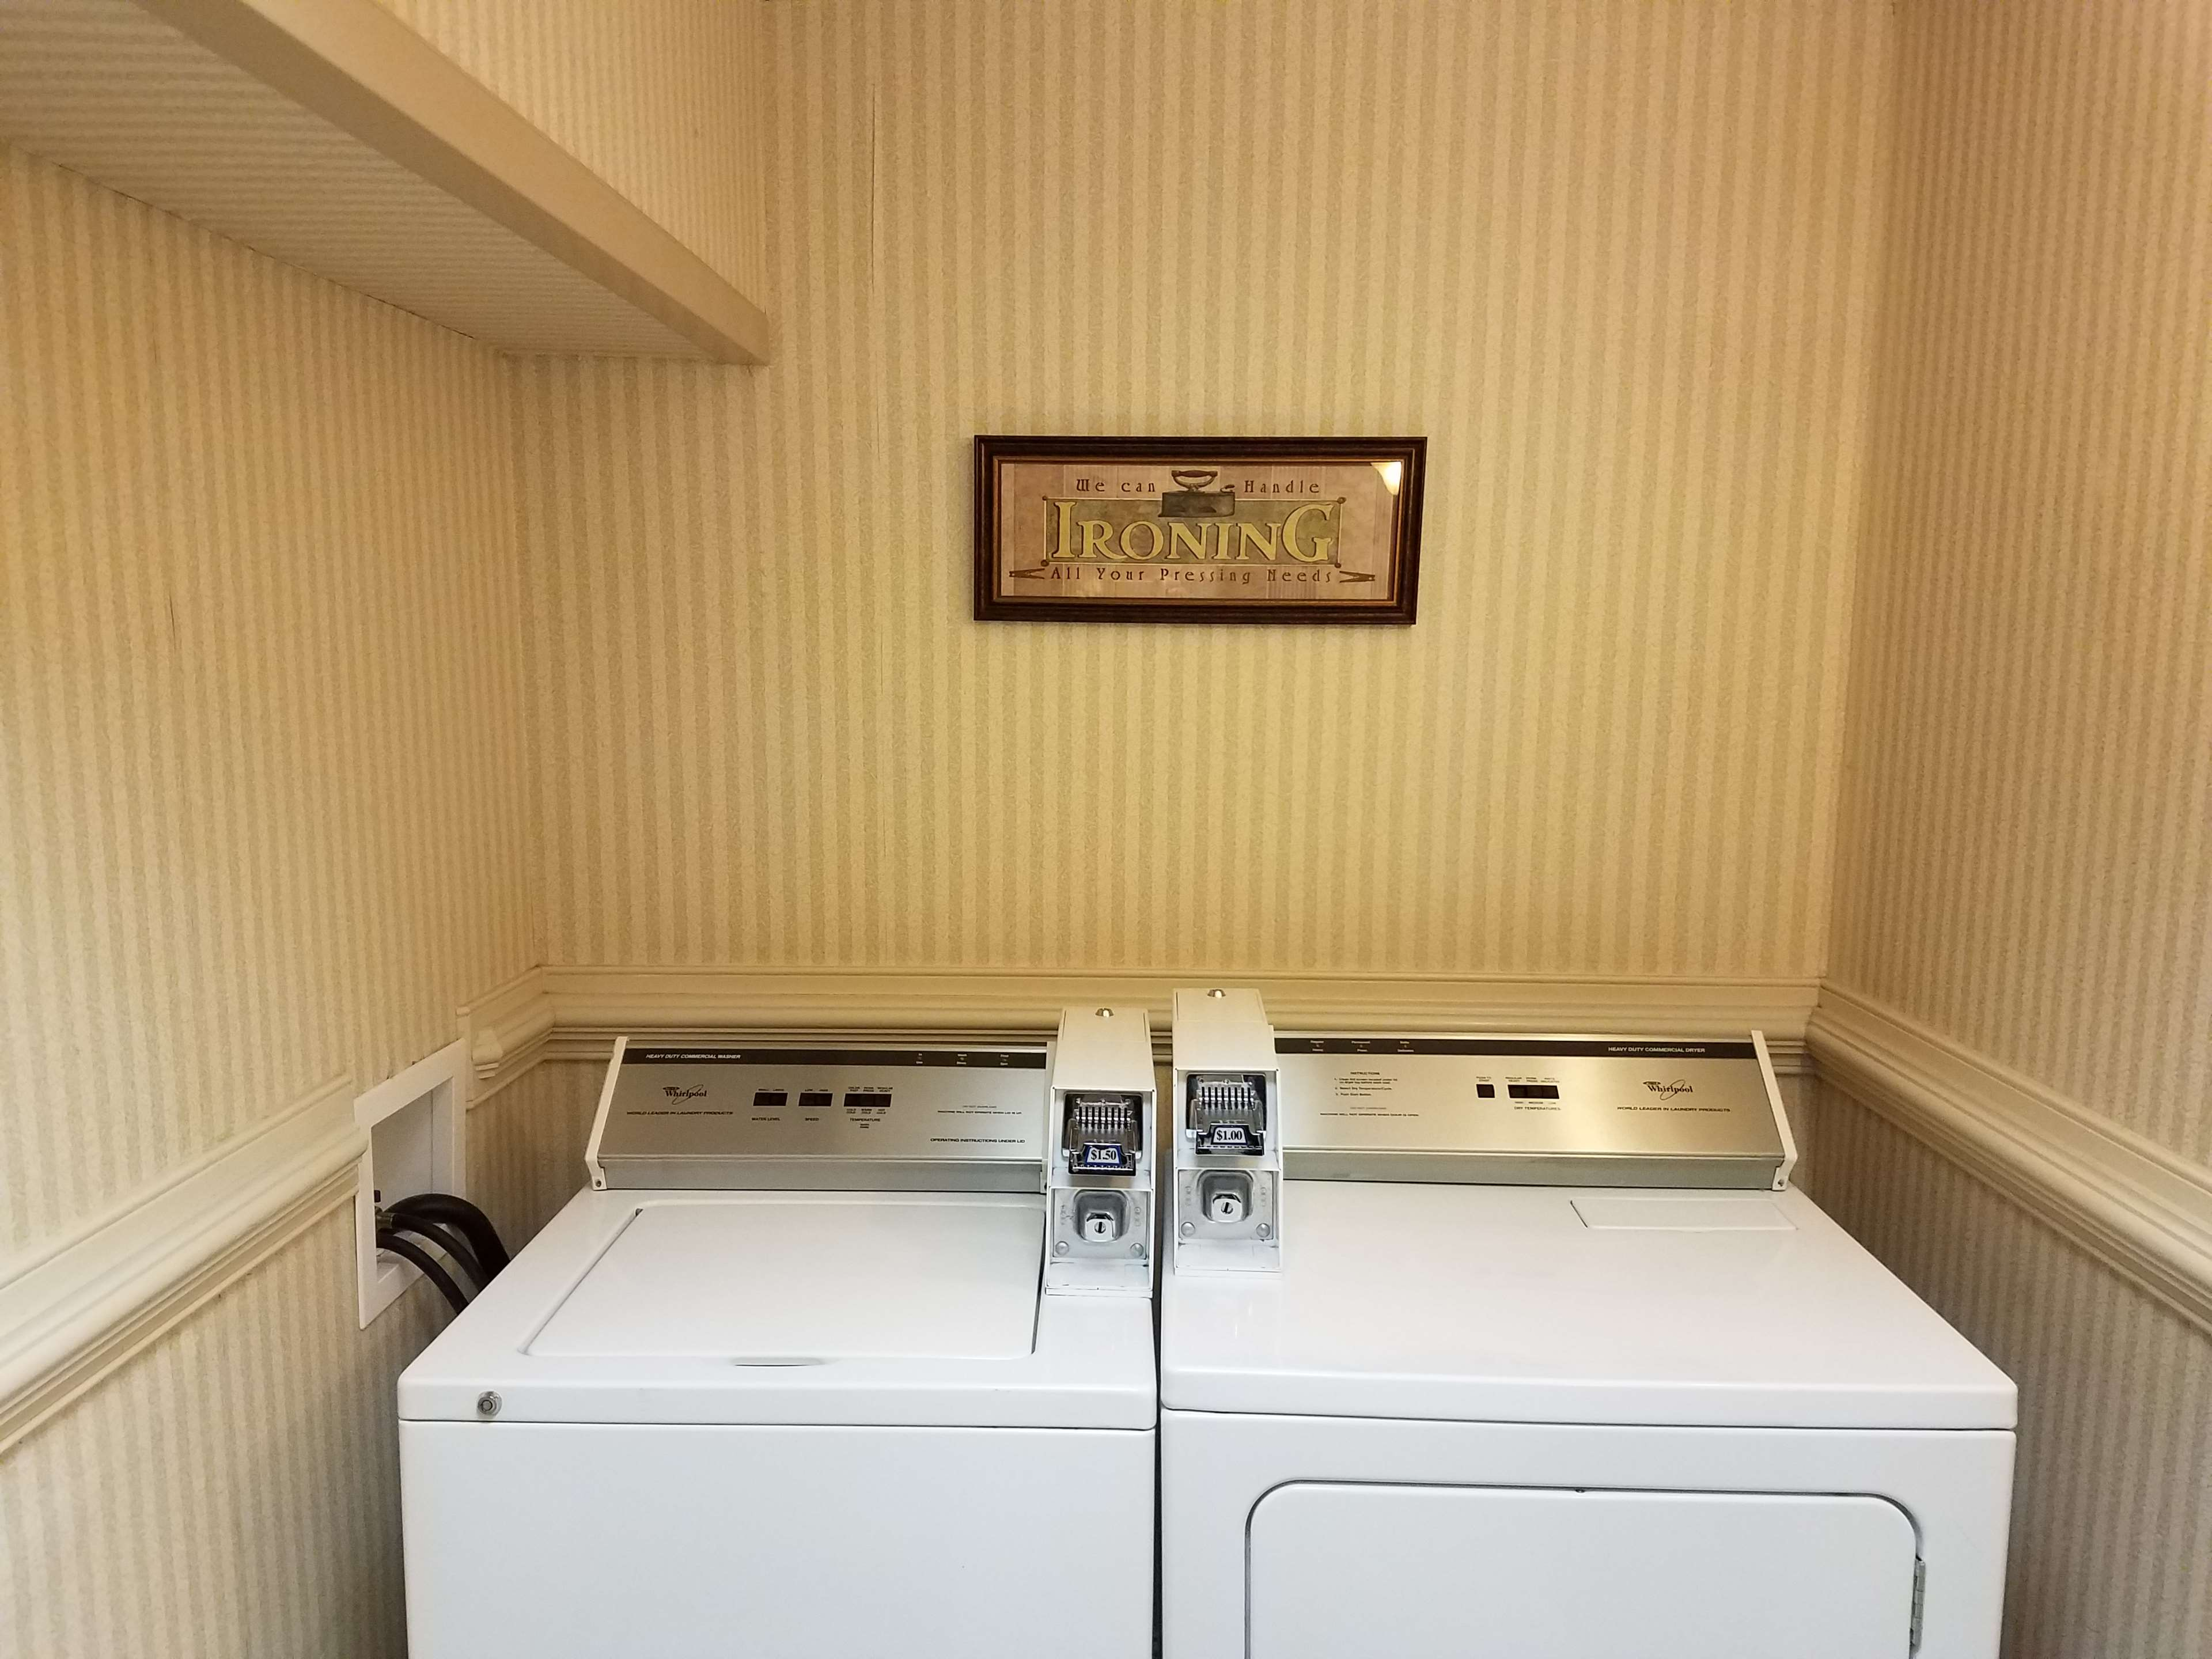 Best Western Plus Morristown Conference Center Hotel image 36